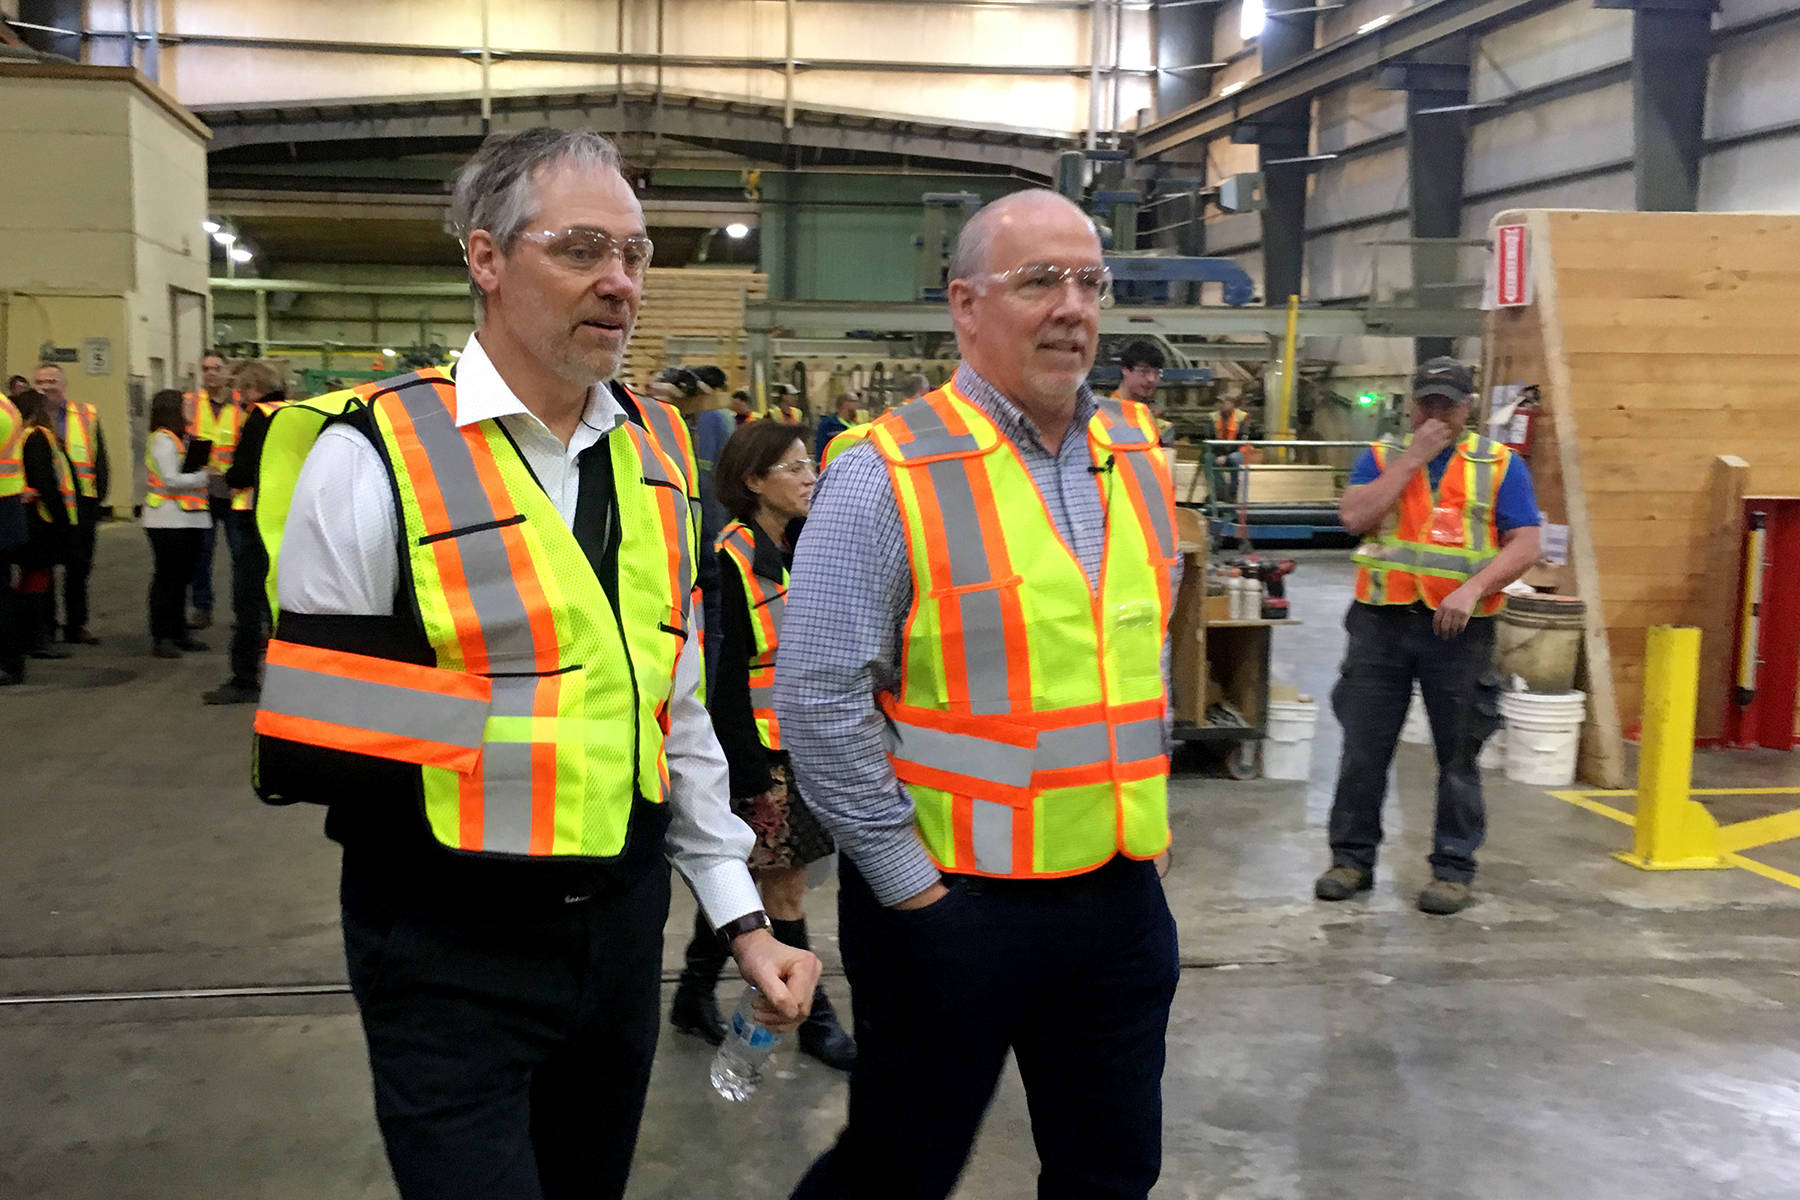 B.C. Premier John Horgan, right, walks with Hardy Wentzel, CEO of Structurlam in Okanagan Falls, March 2019. Horgan's NDP government has emphasized value added production and redistribution of Crown timber licences. (Penticton Western News)